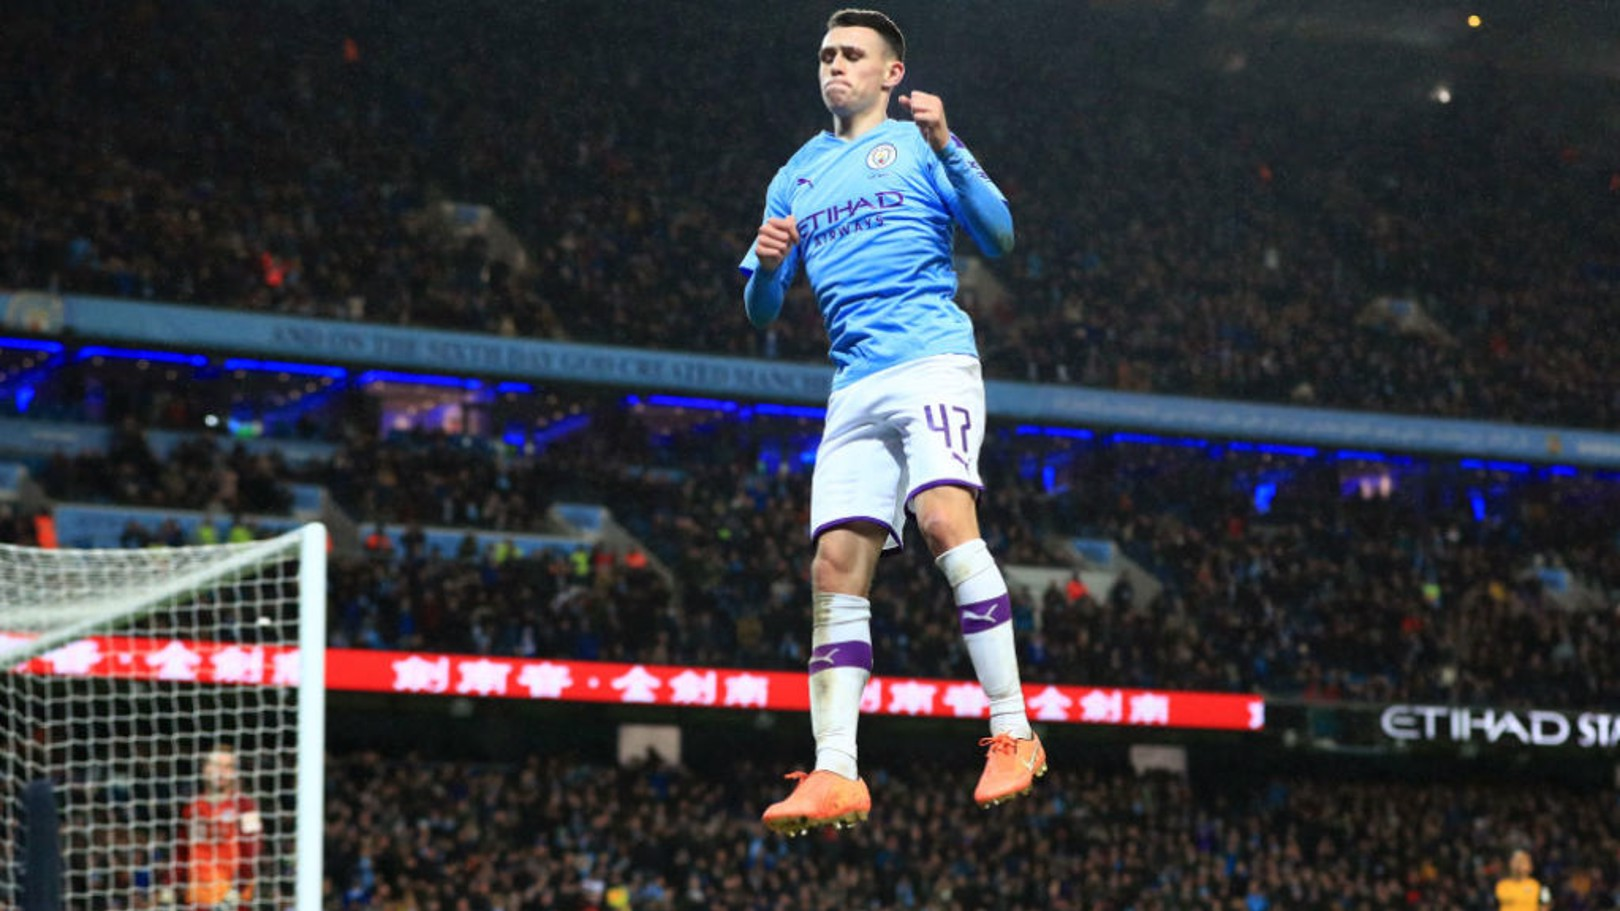 HIGH AND MIGHTY: Phil Foden celebrates what was a superb strike